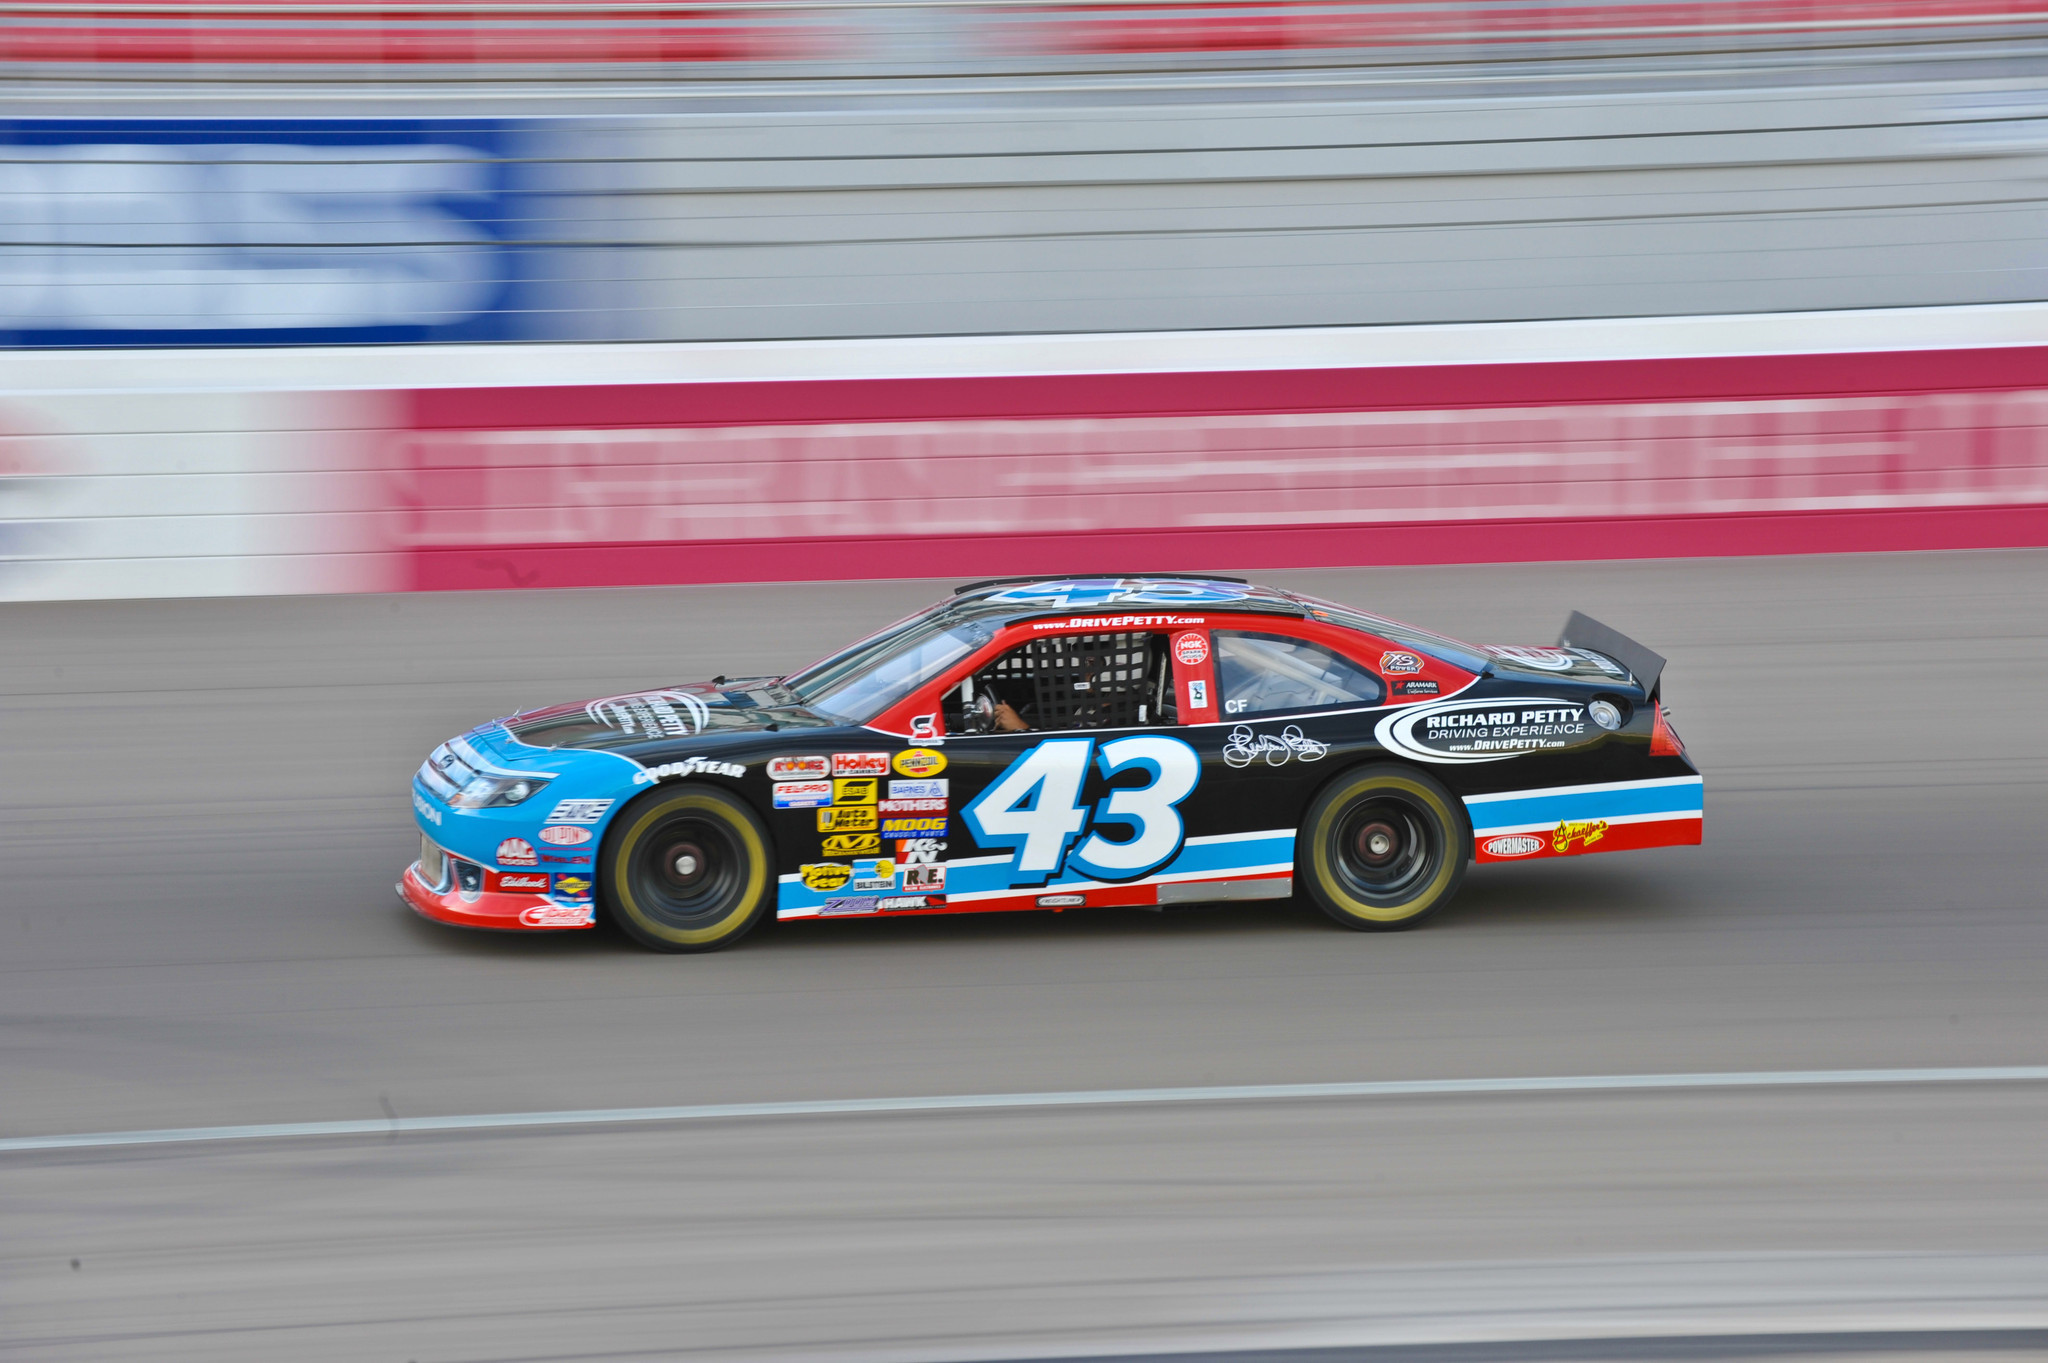 Richard Petty Driving Experience and NASCAR Racing Experience Sale